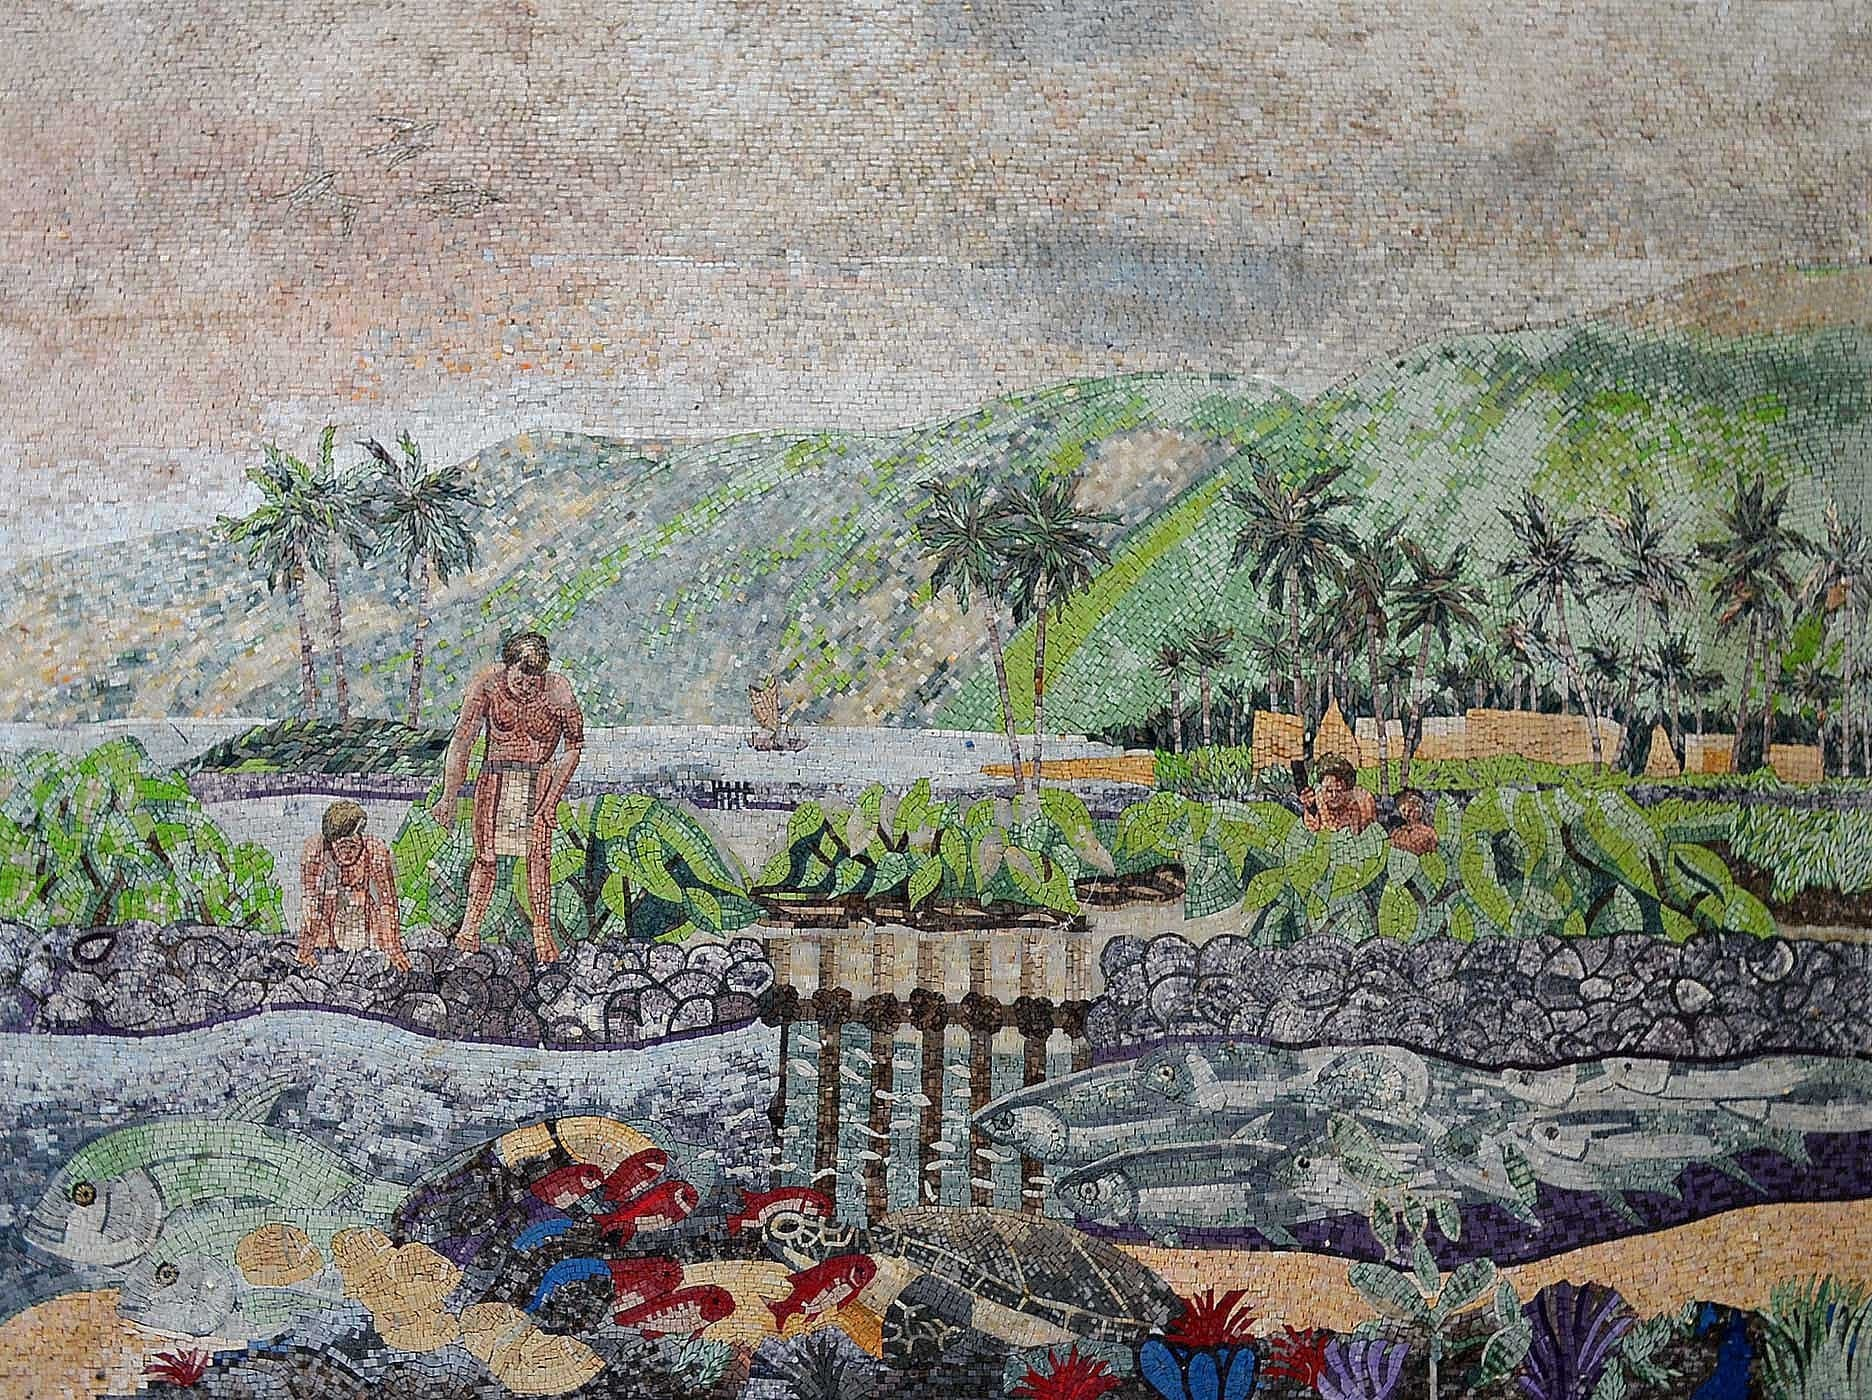 Primitive People Life Illustrative Mosaic Pic